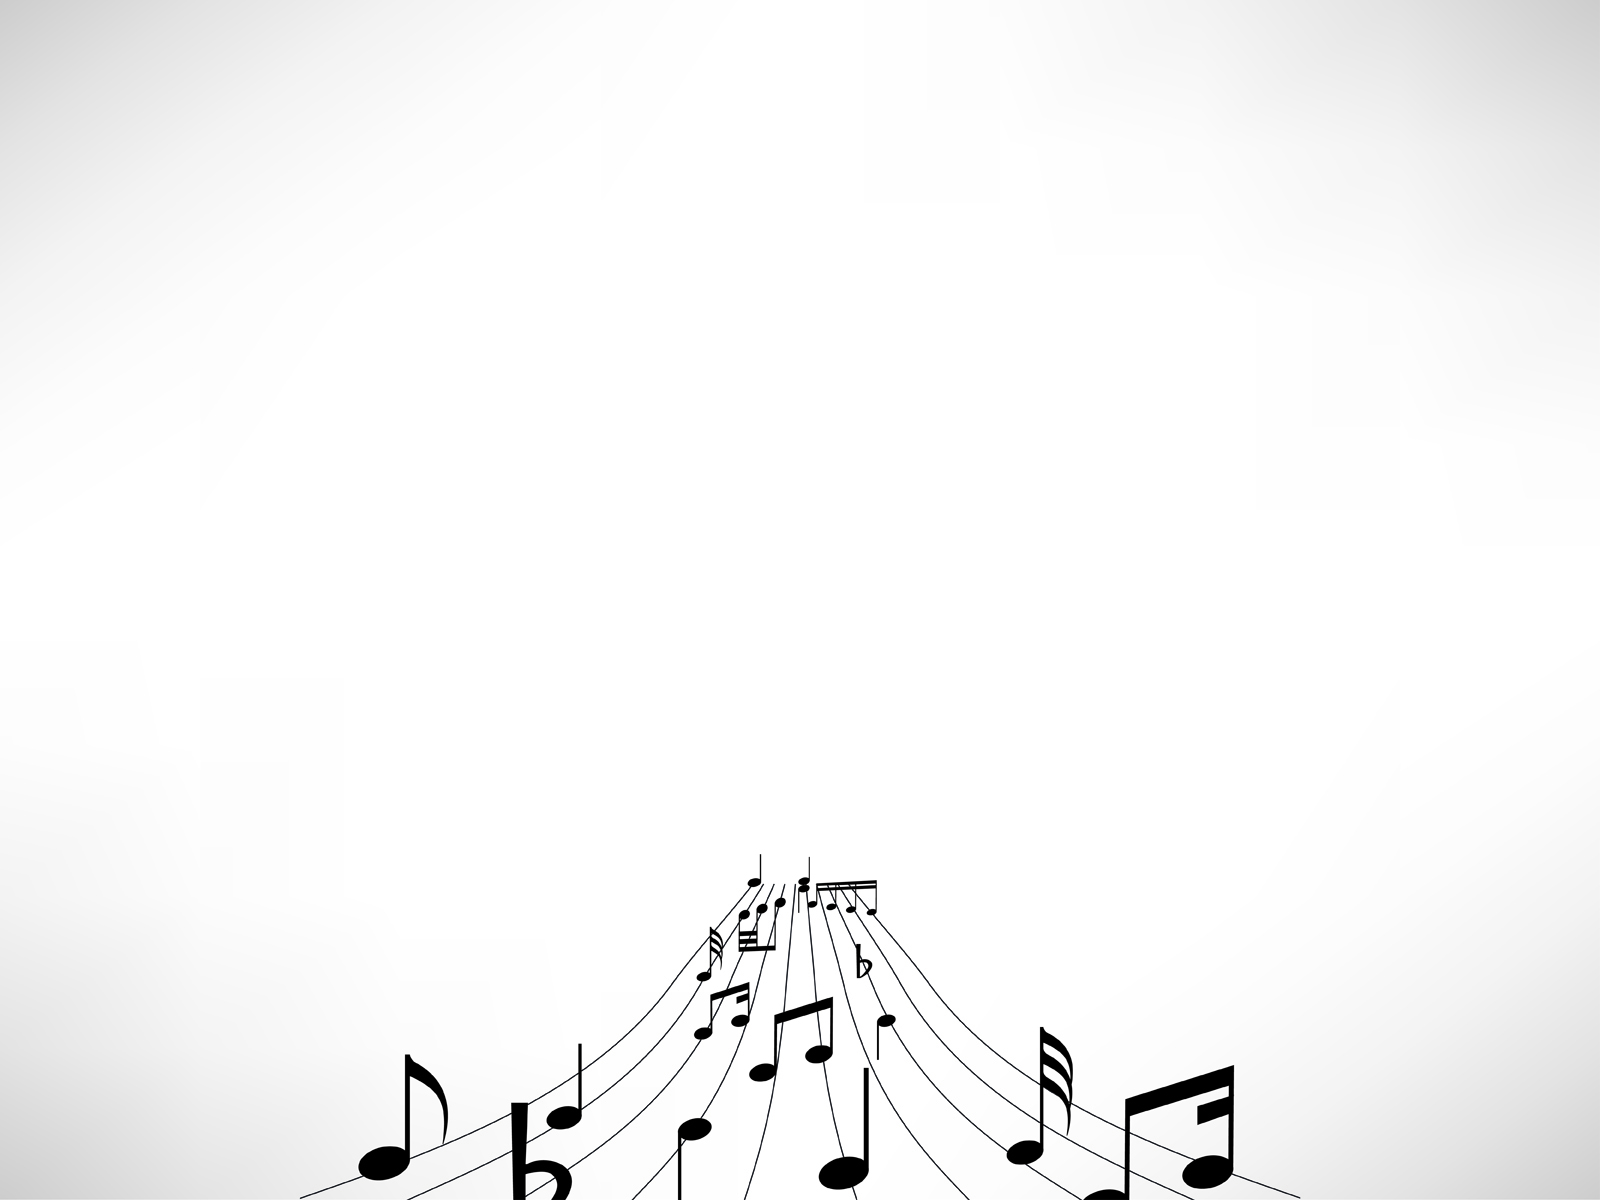 Music Notes Background 2 Cool Wallpapers | Wallpaper Joo - Cliparts.co